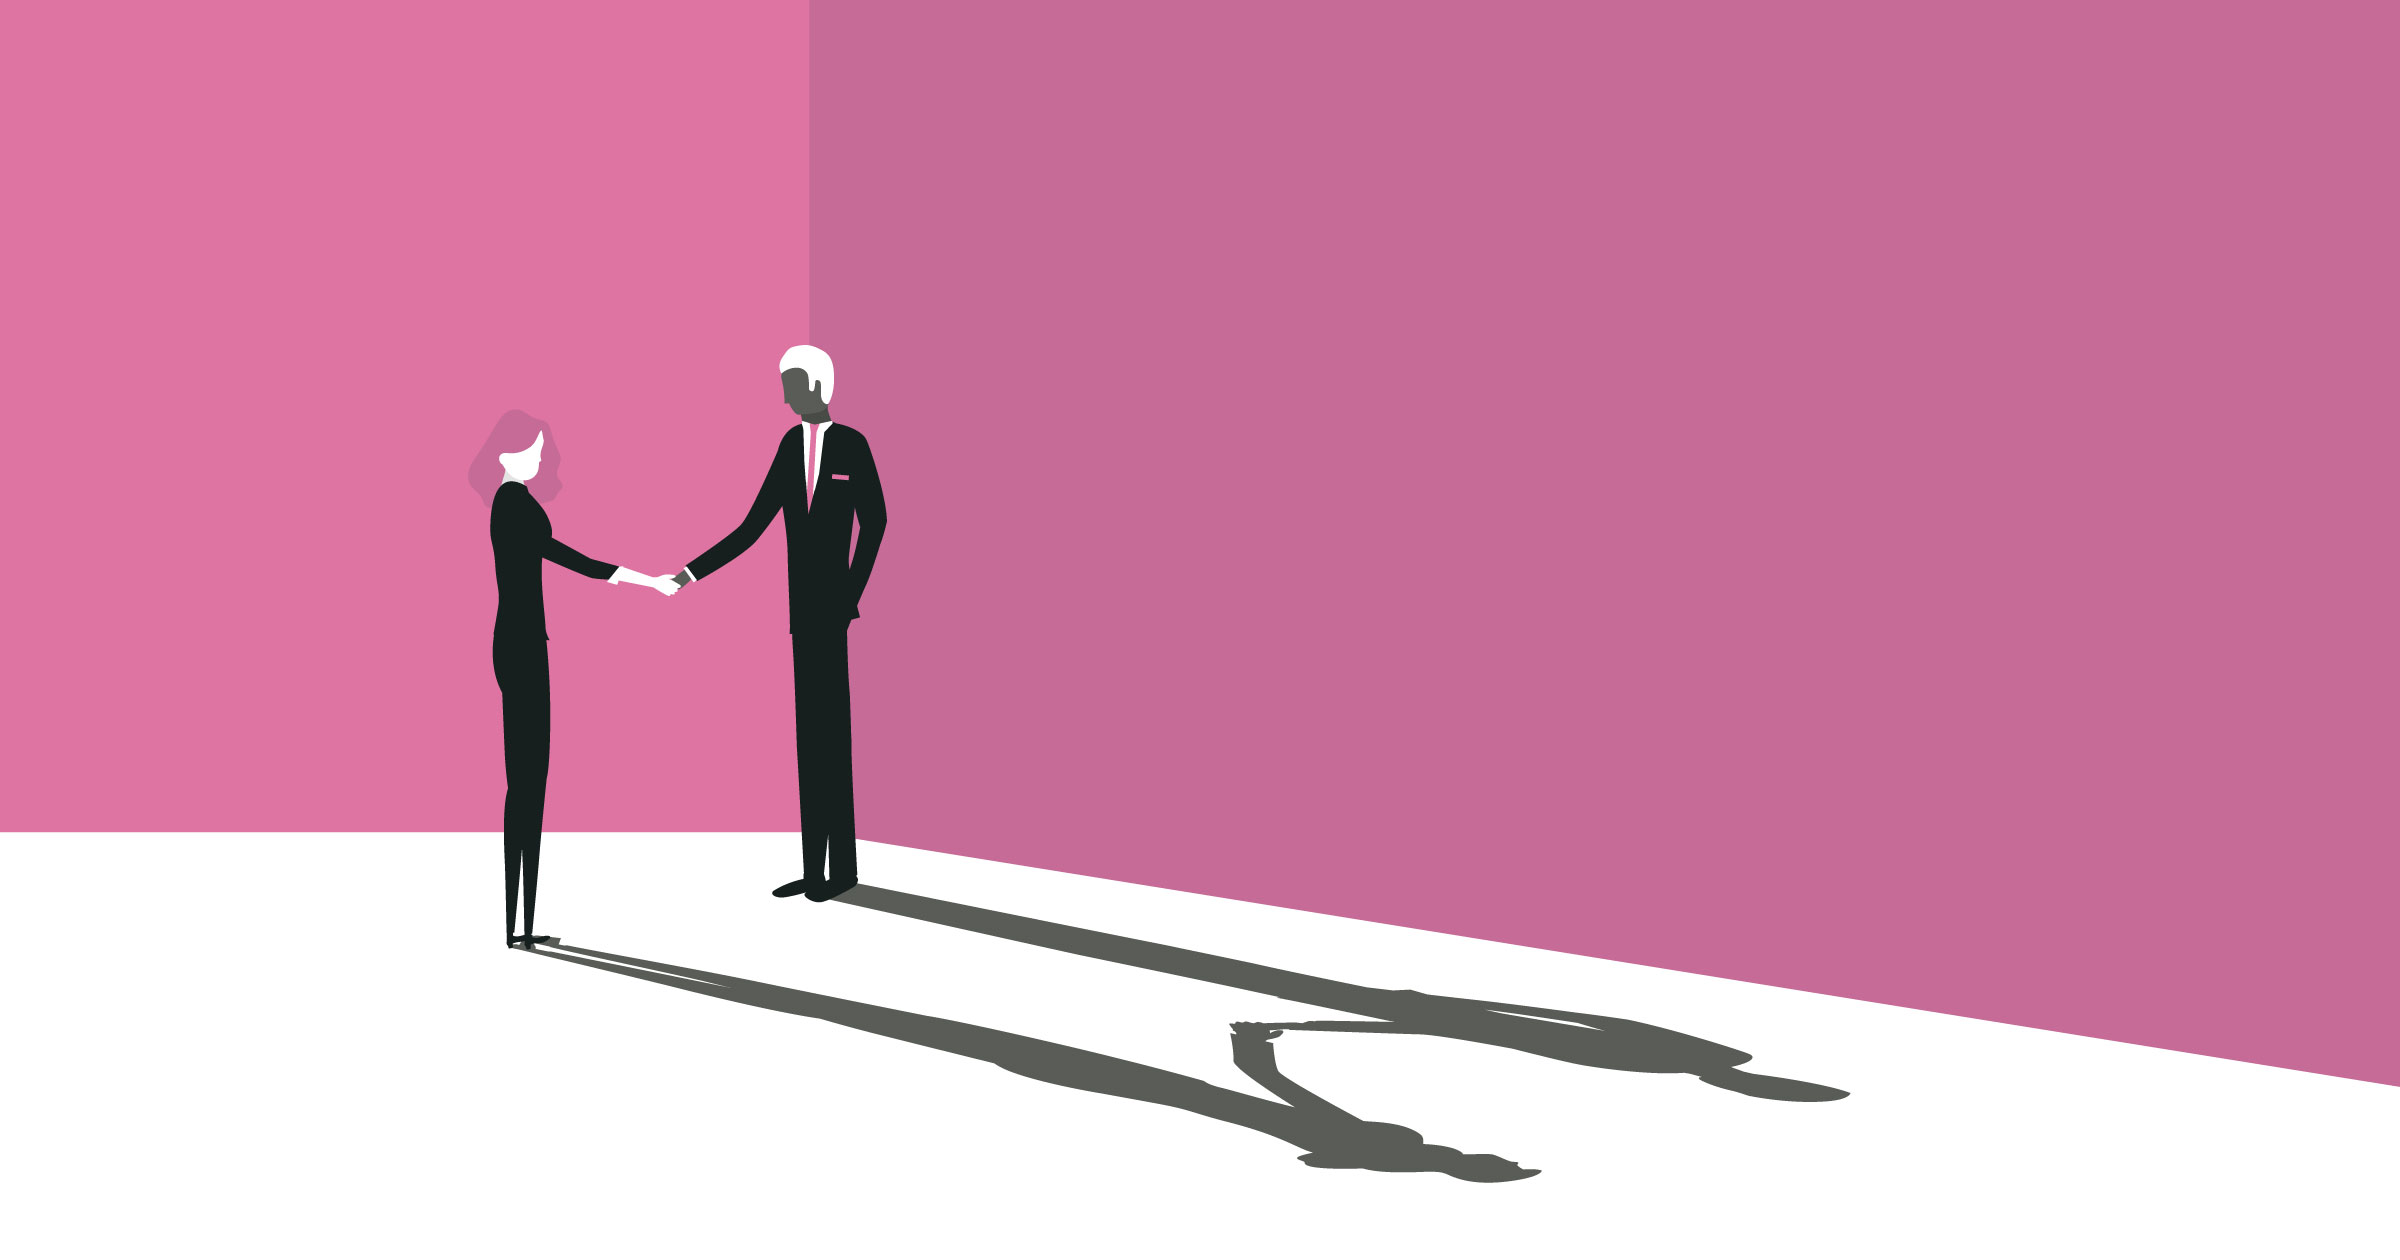 Illustration of two business people shaking hands